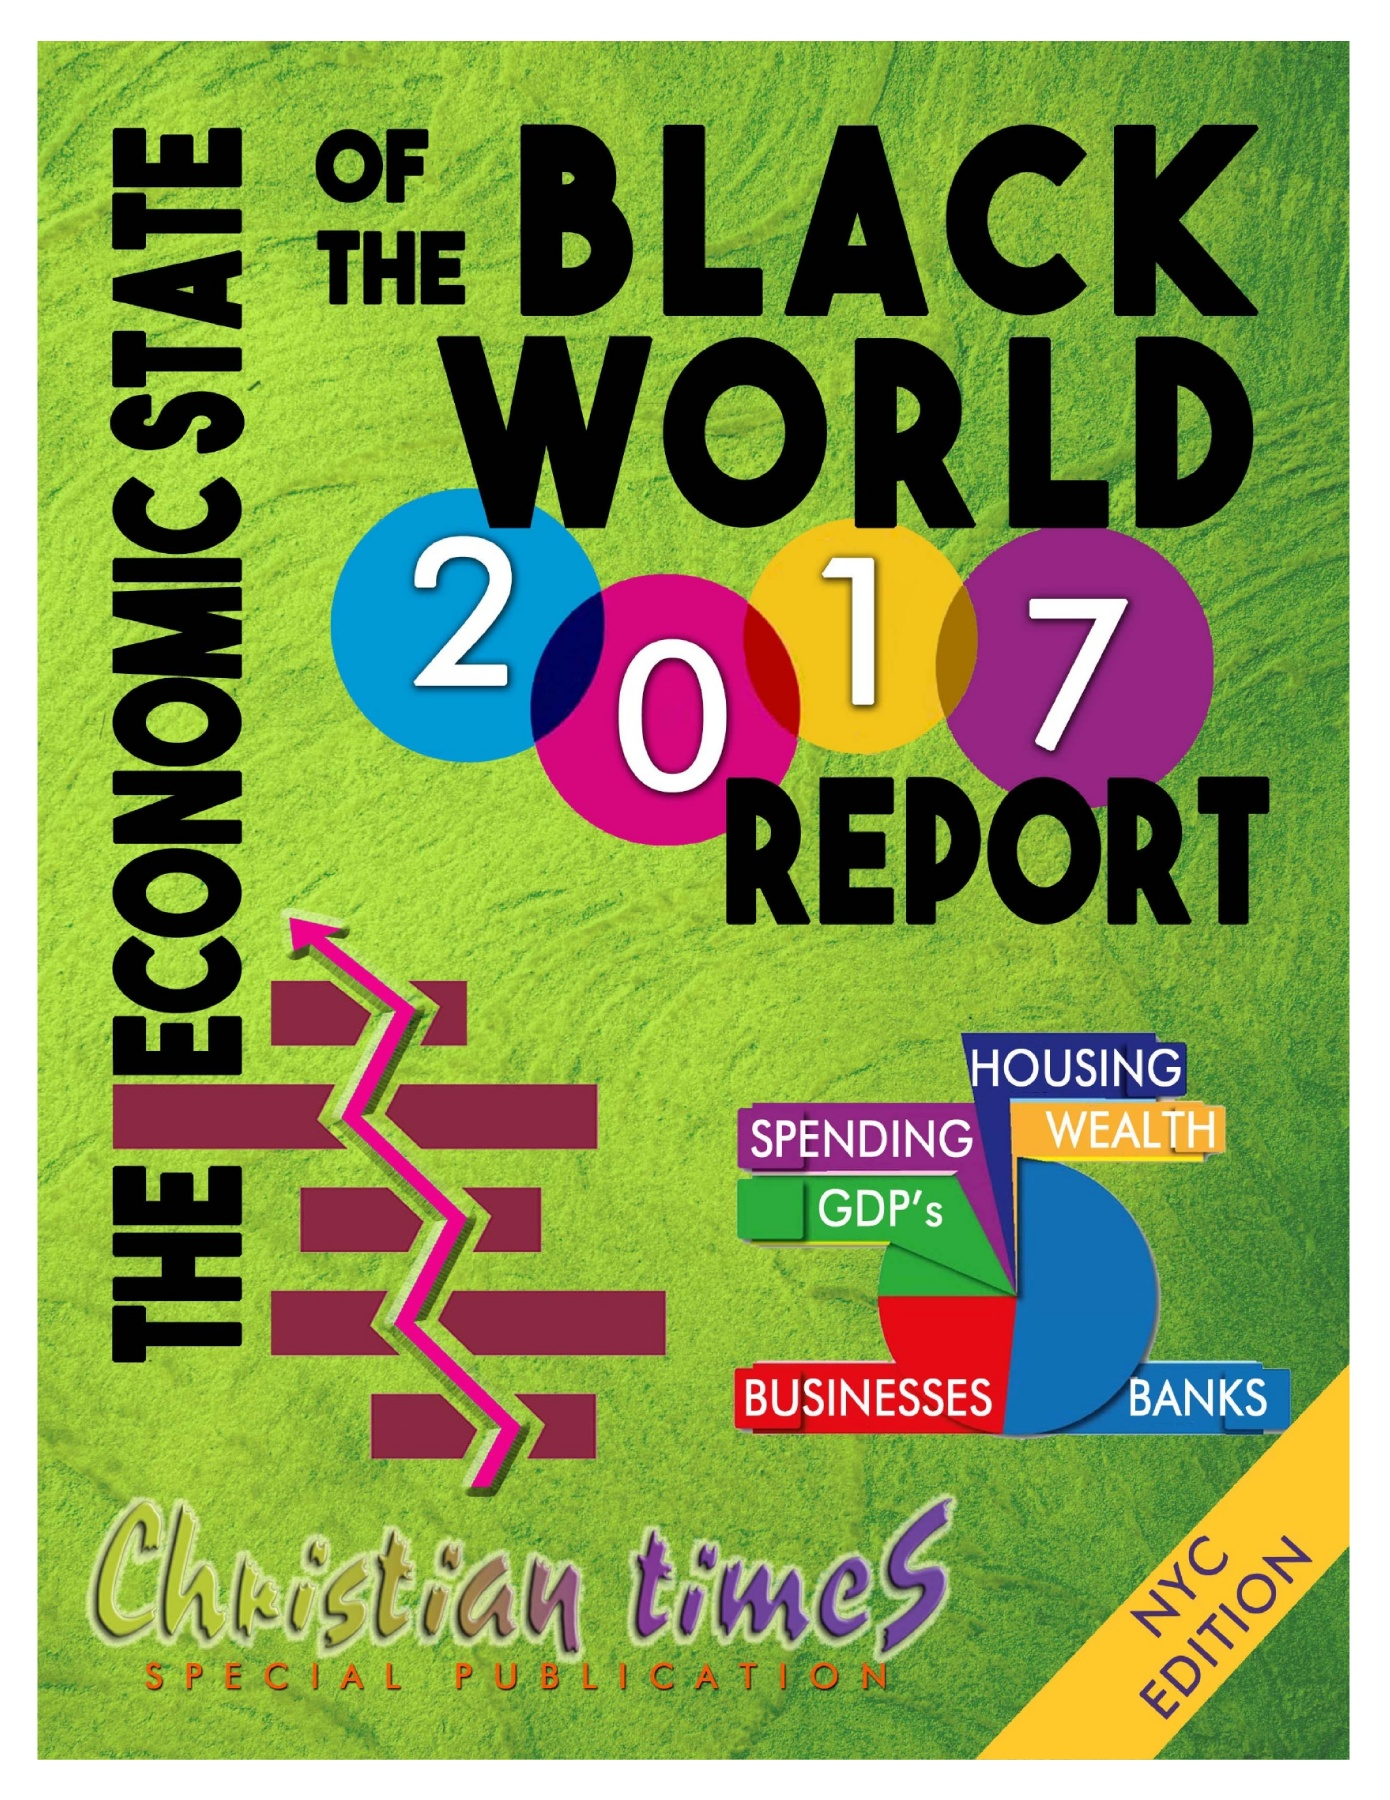 Economic State of Black New York Report (2017) Pages 1 - 50